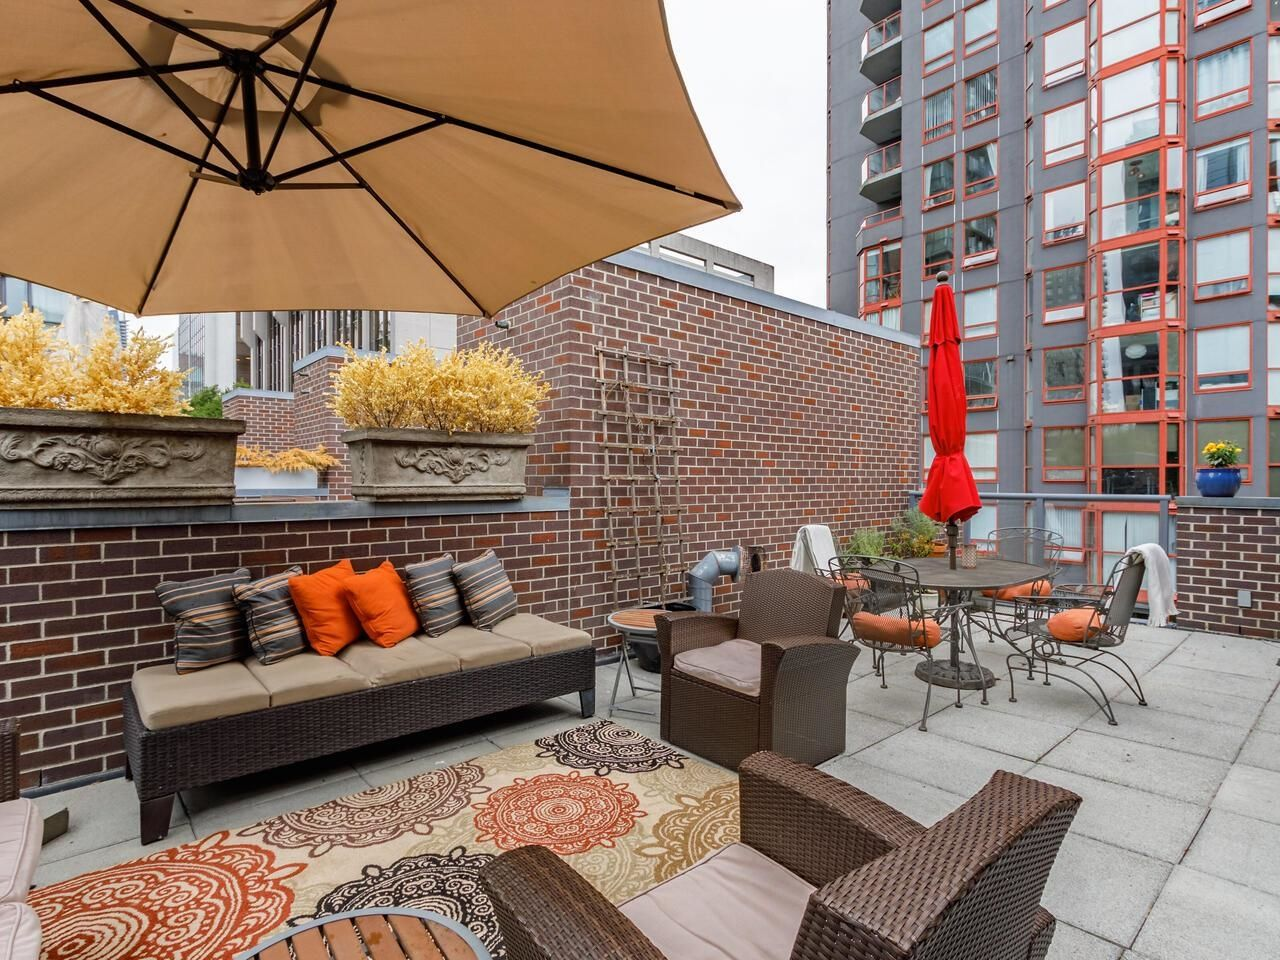 Main Photo: 100 1068 HORNBY STREET in Vancouver: Downtown VW Townhouse for sale (Vancouver West)  : MLS®# R2615995